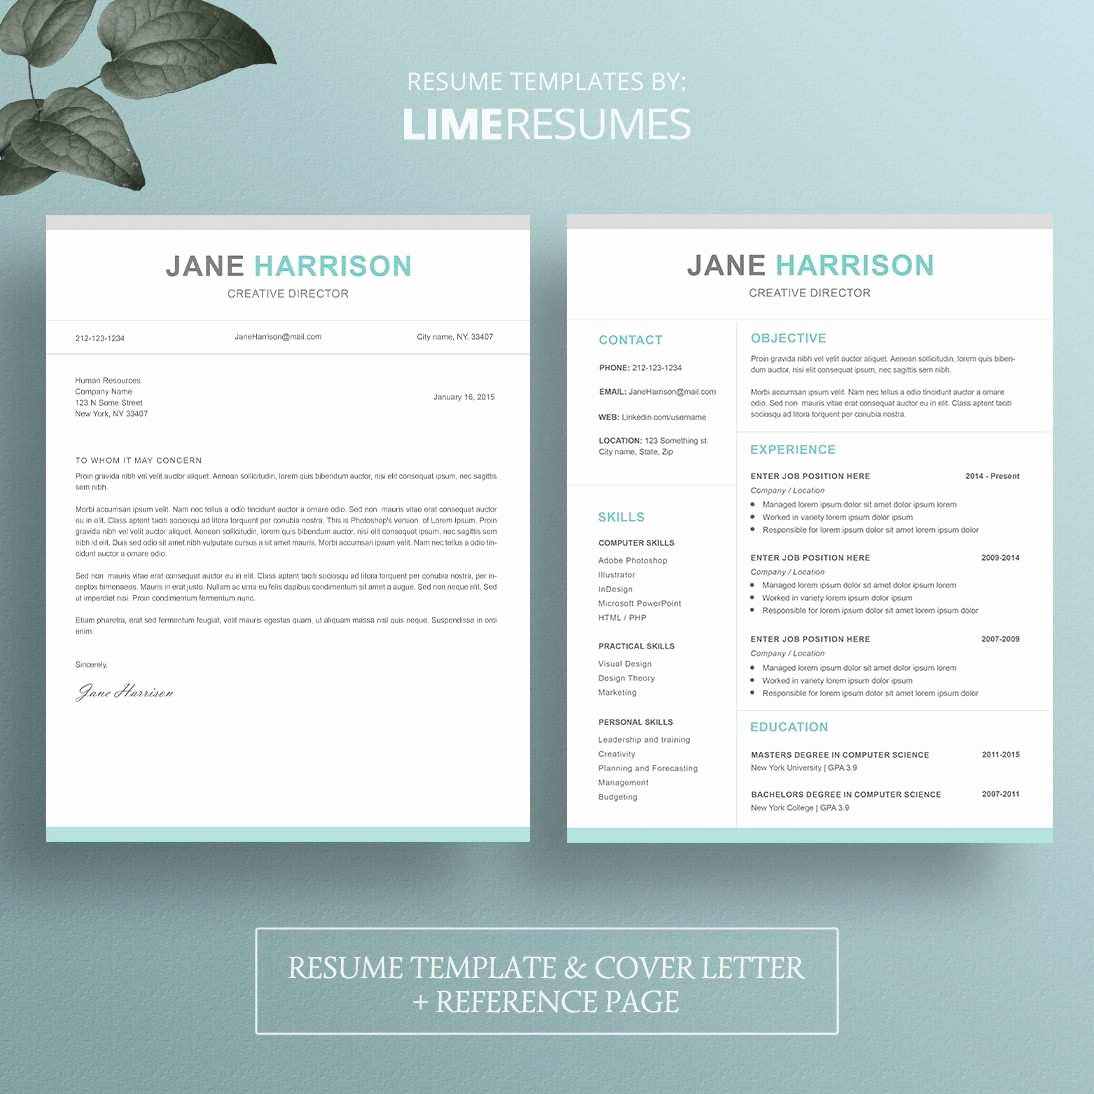 Creative Resume Template Word New Creative Resume Templates Free Download for Microsoft Word